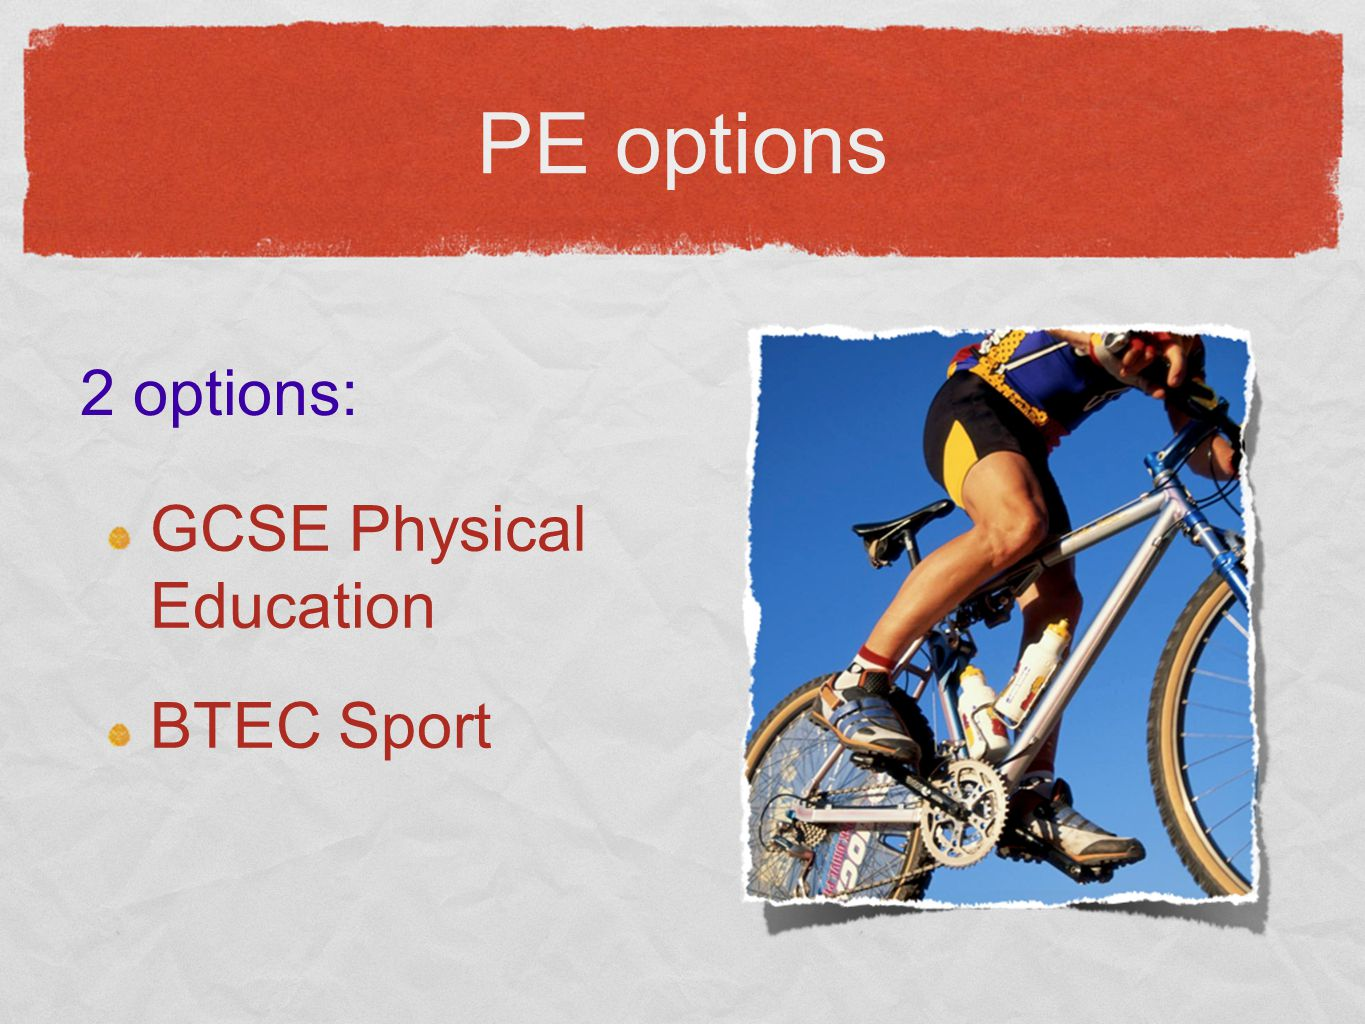 GCSE Physical Education BTEC Sport 2 options: